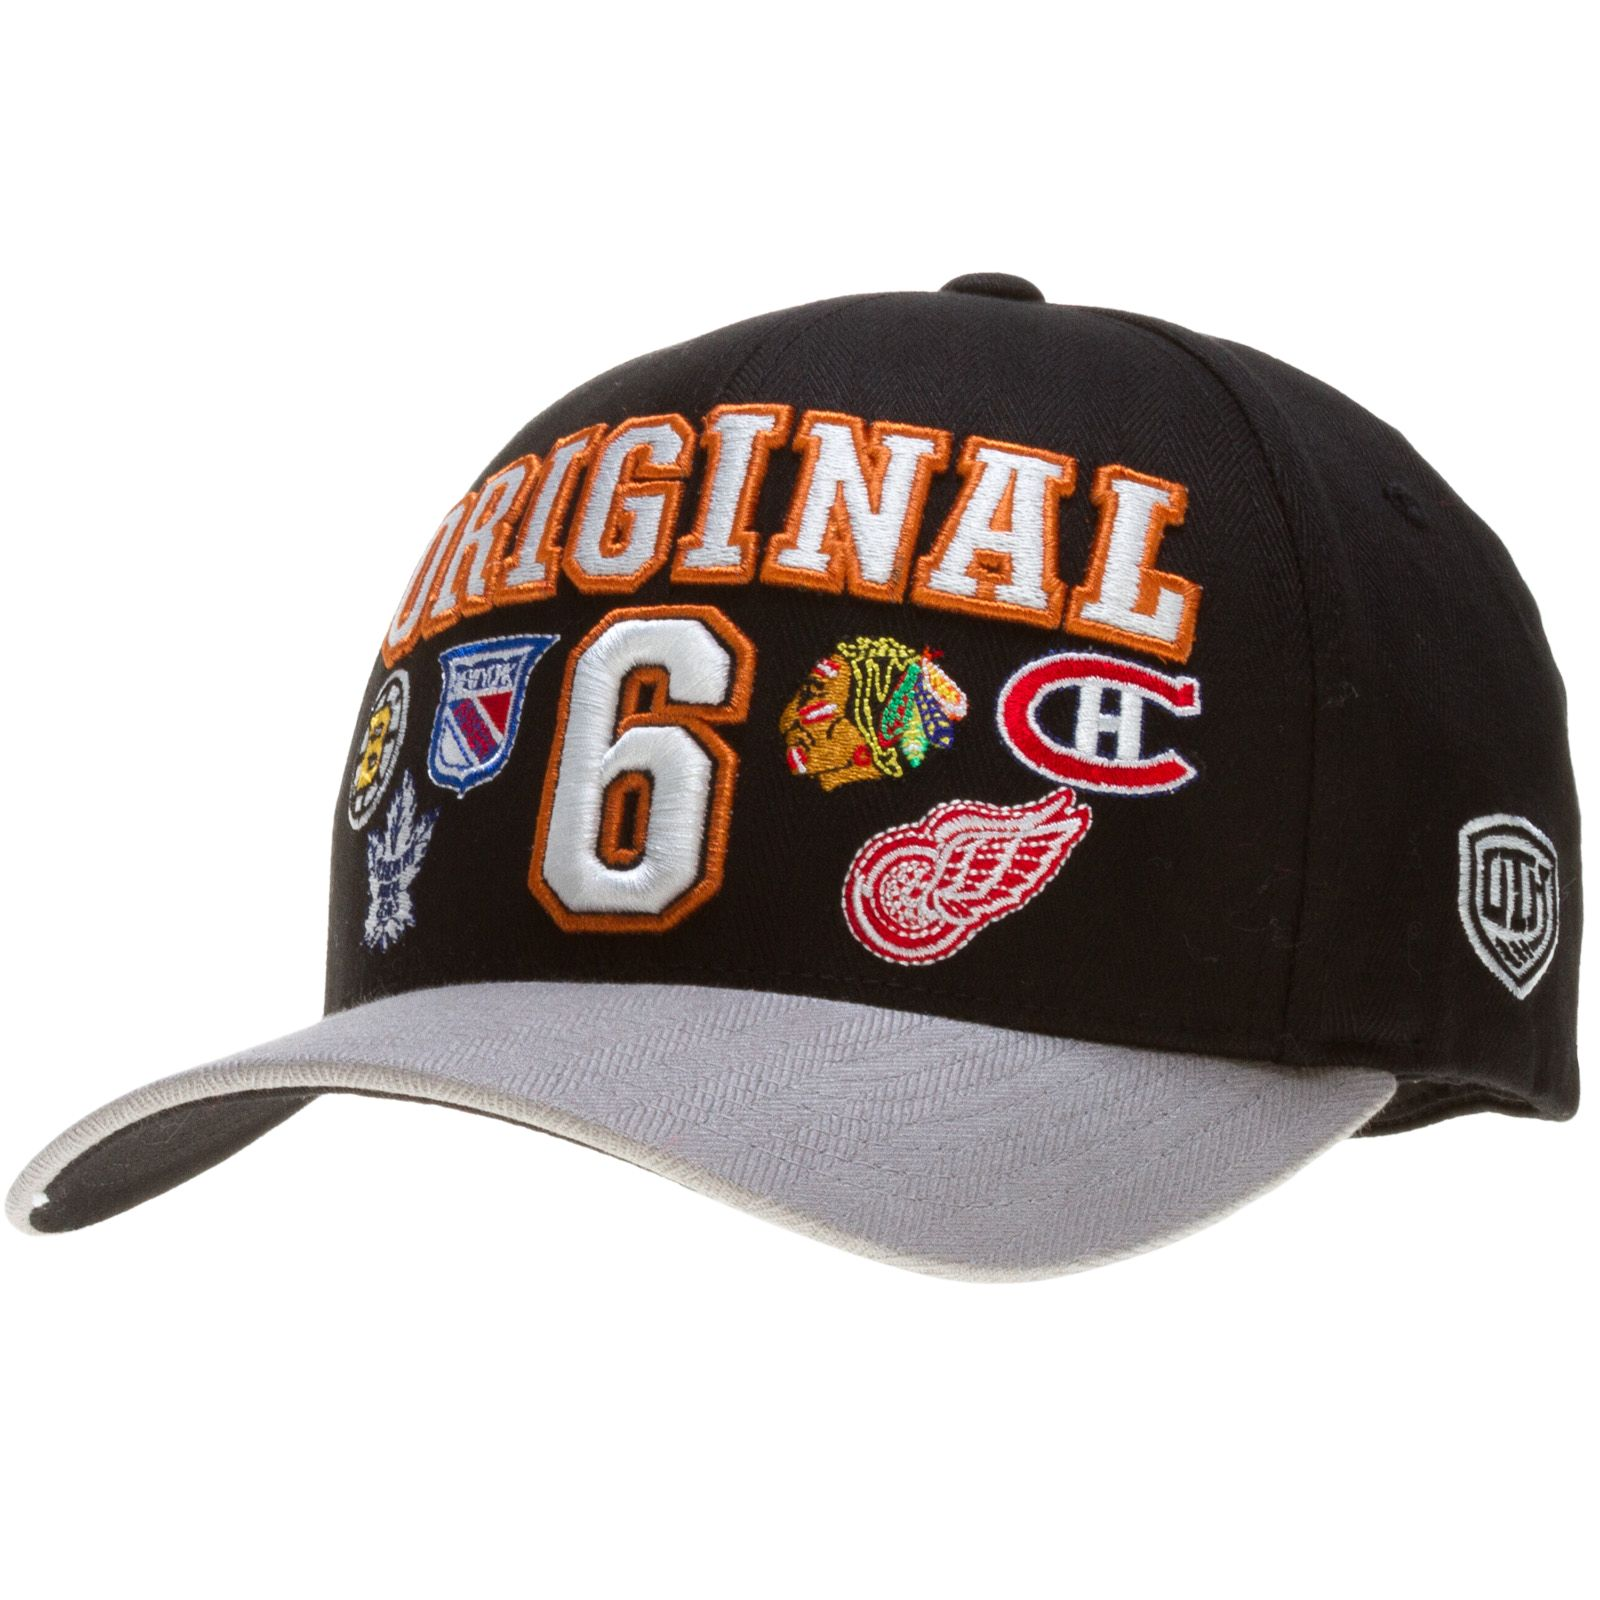 65f1d123657c27 Chicago Blackhawks Black and Grey Original 6 All Logos Flex Fit Hat by Old  Time Hockey #Chicago #Blackhawks #ChicagoBlackhawks #BostonBruins  #NewYorkRangers ...